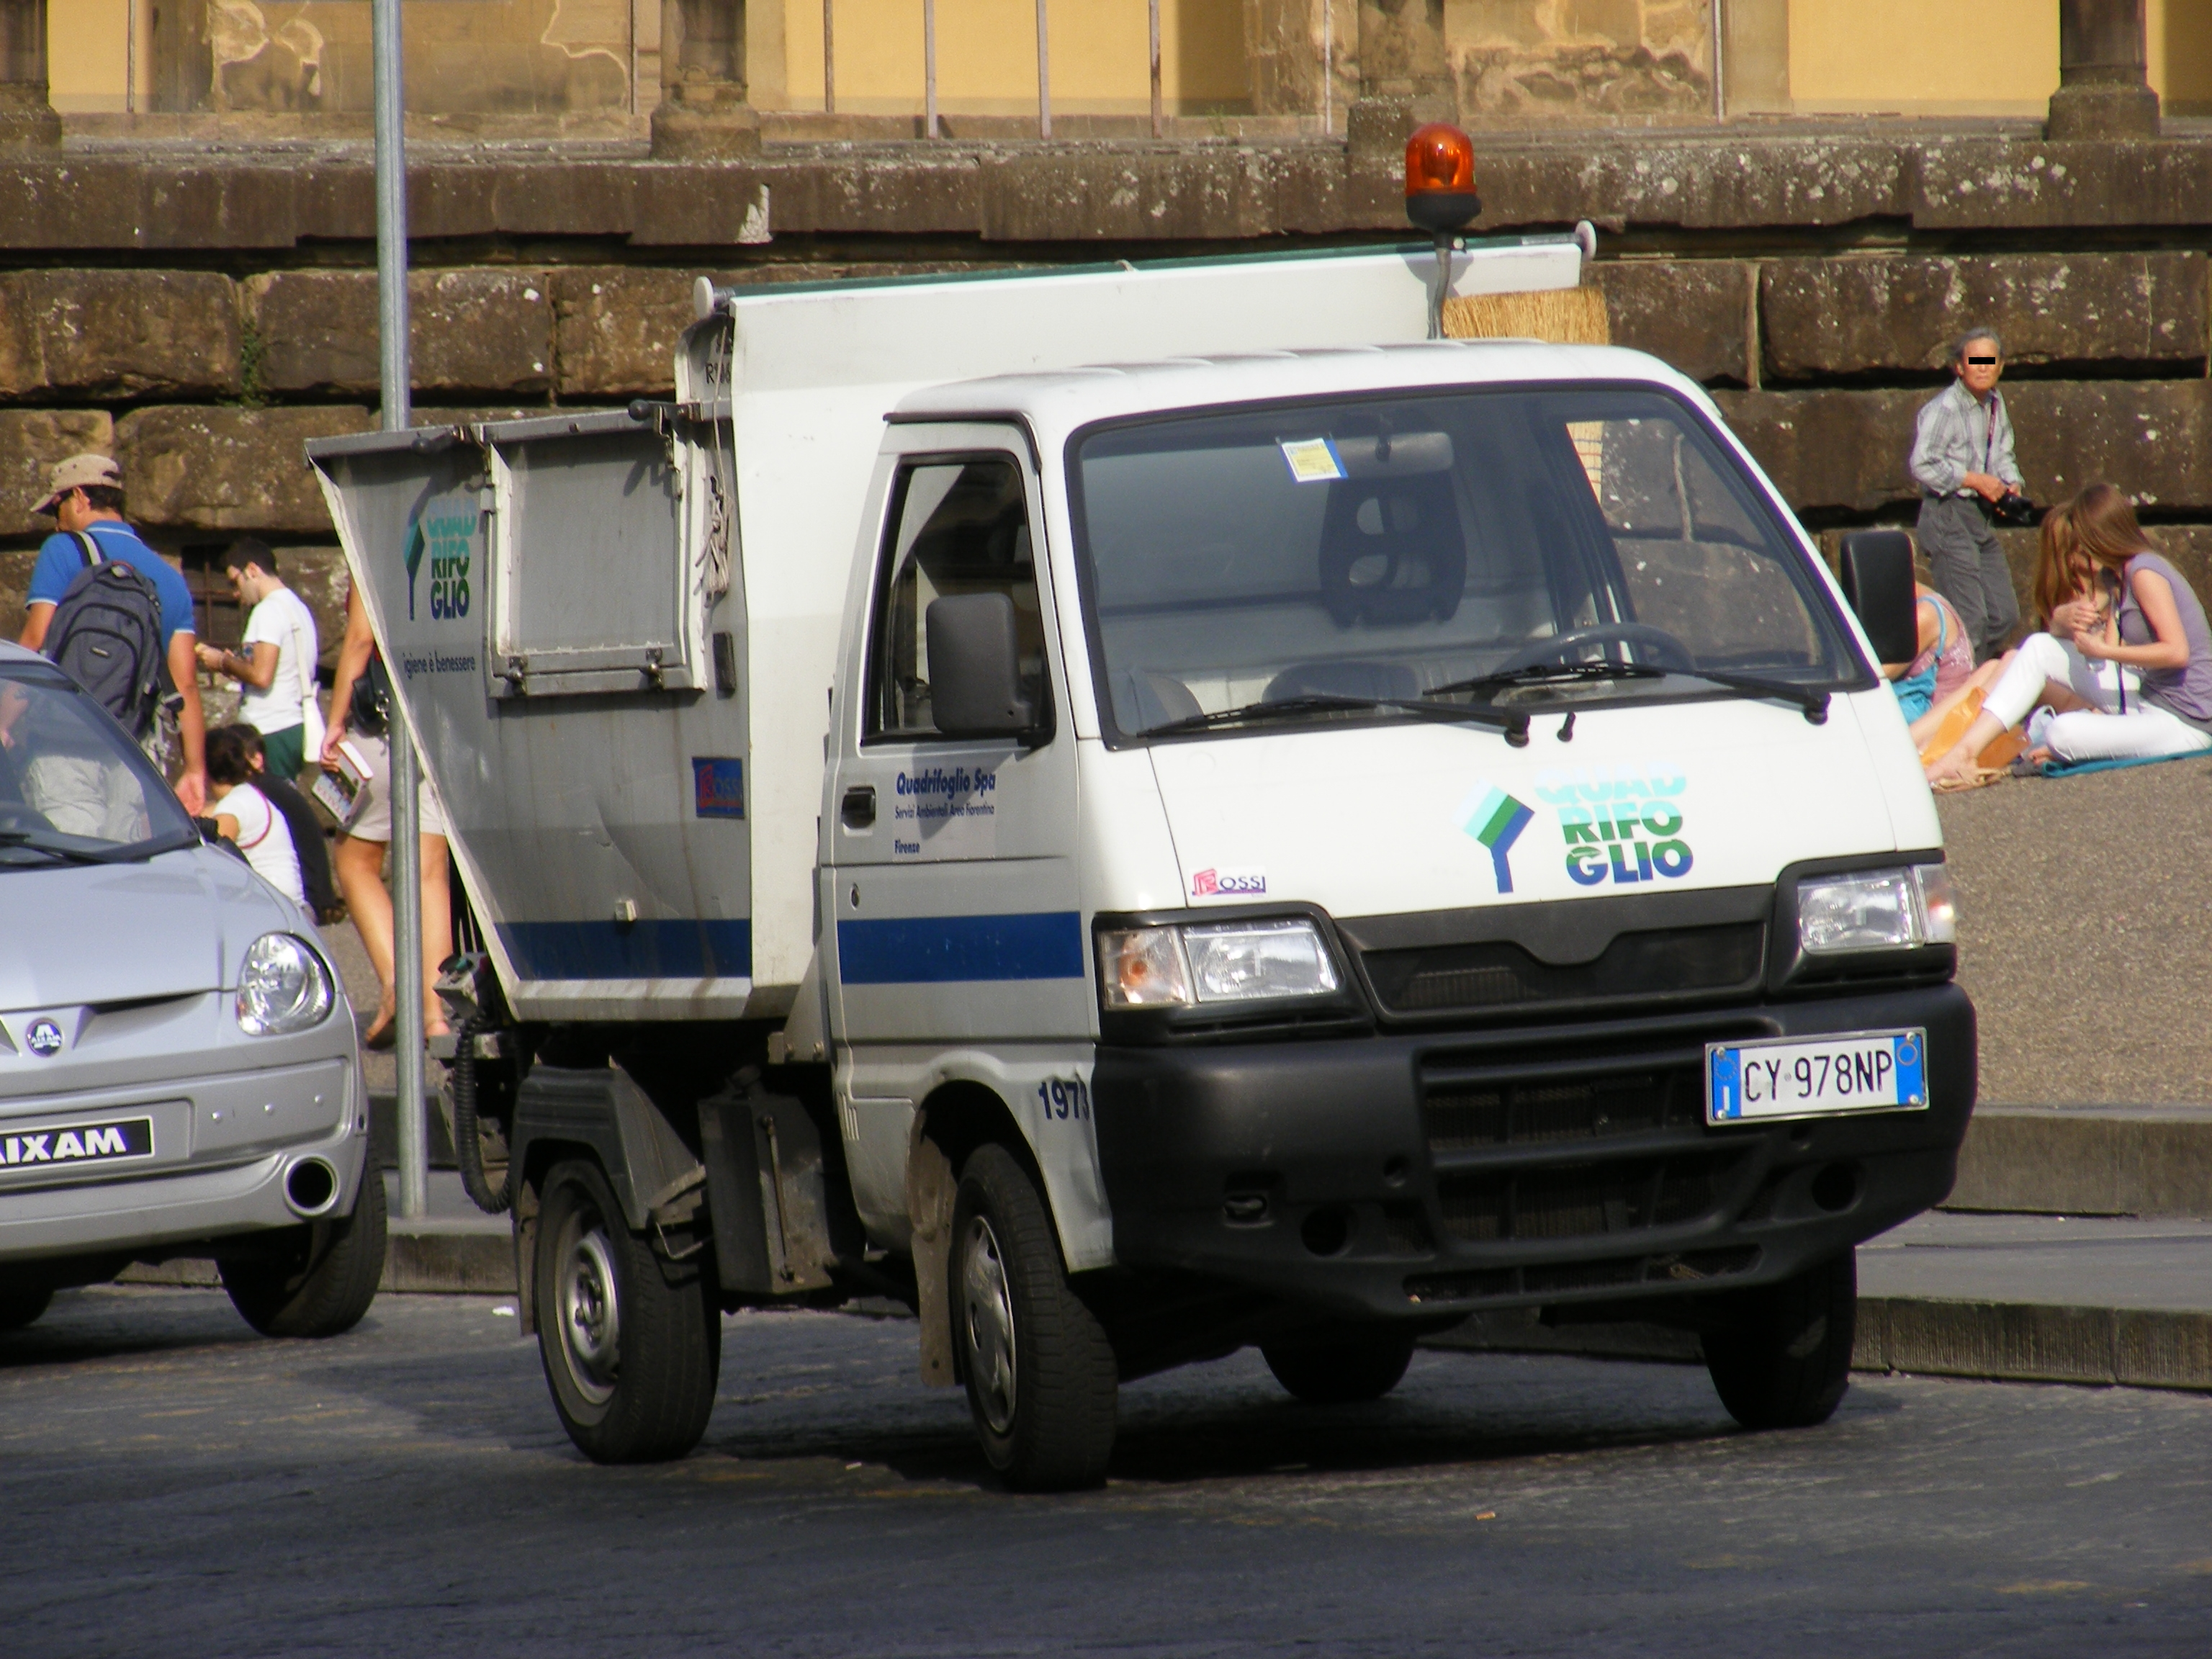 file:florence - piaggio porter waste collection vehicle with